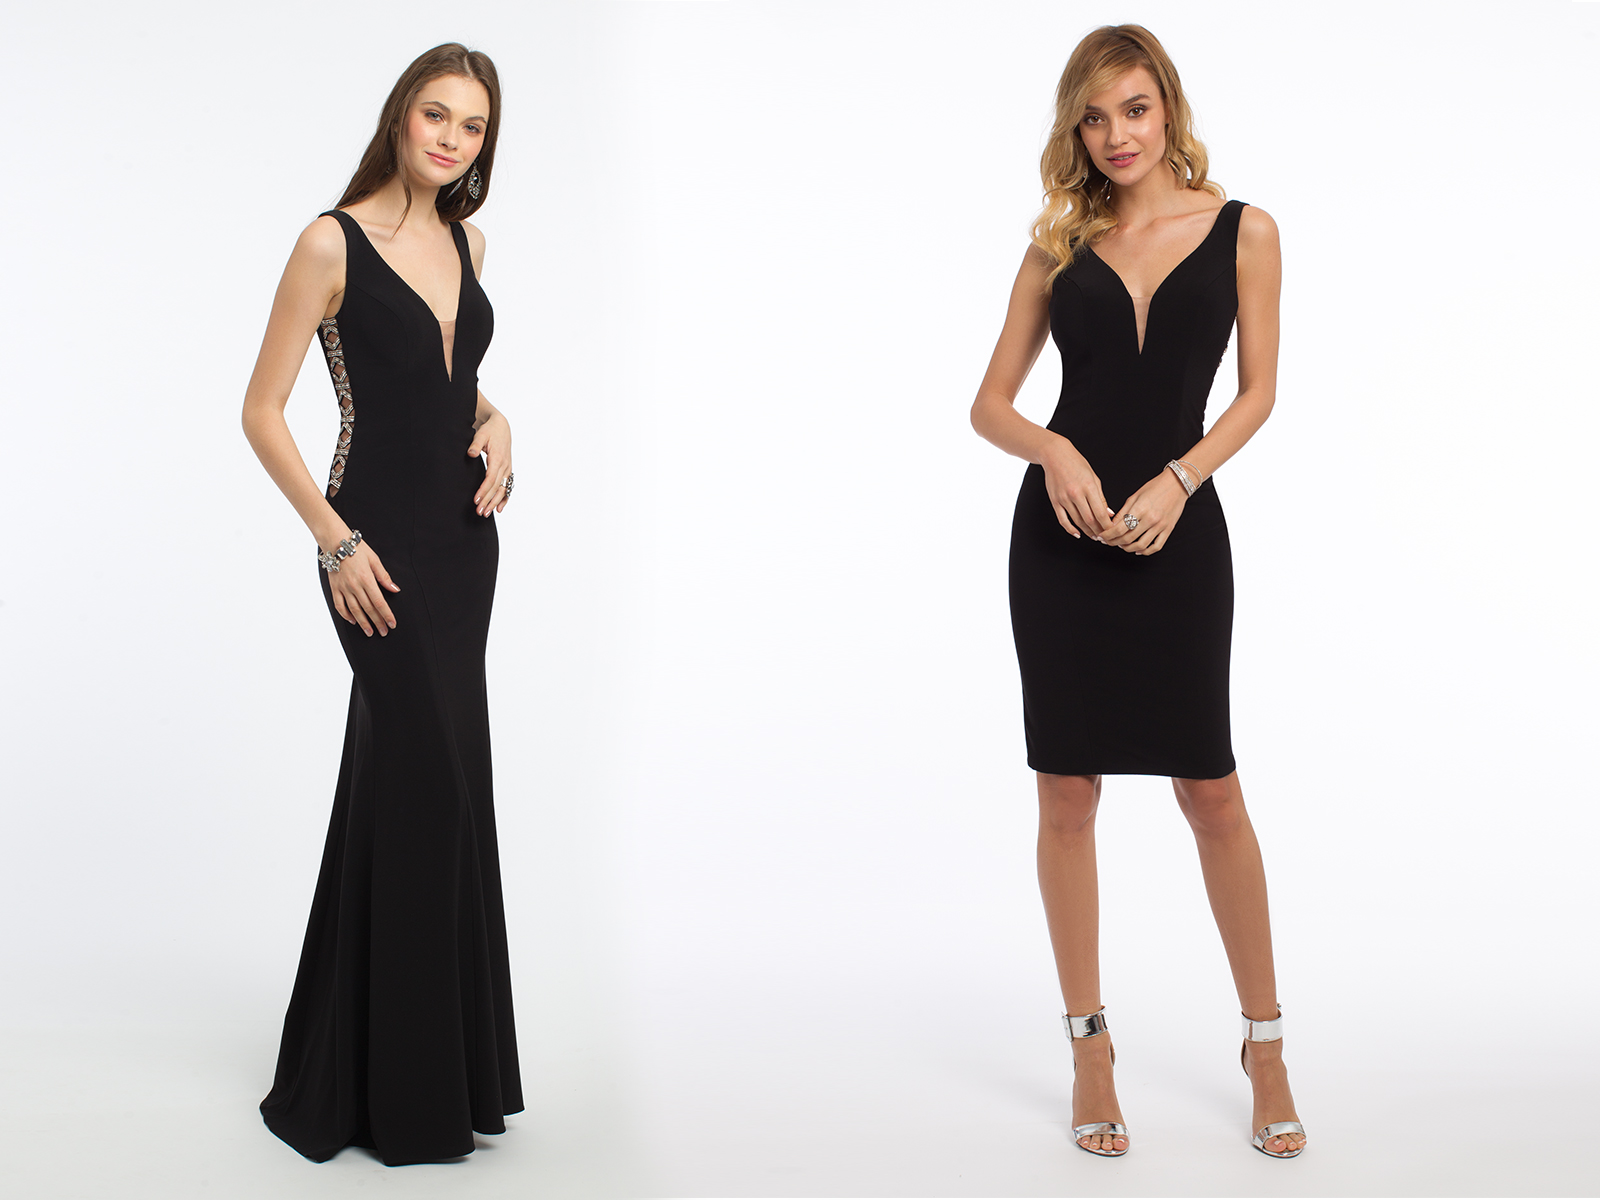 V-Neck Black Dresses